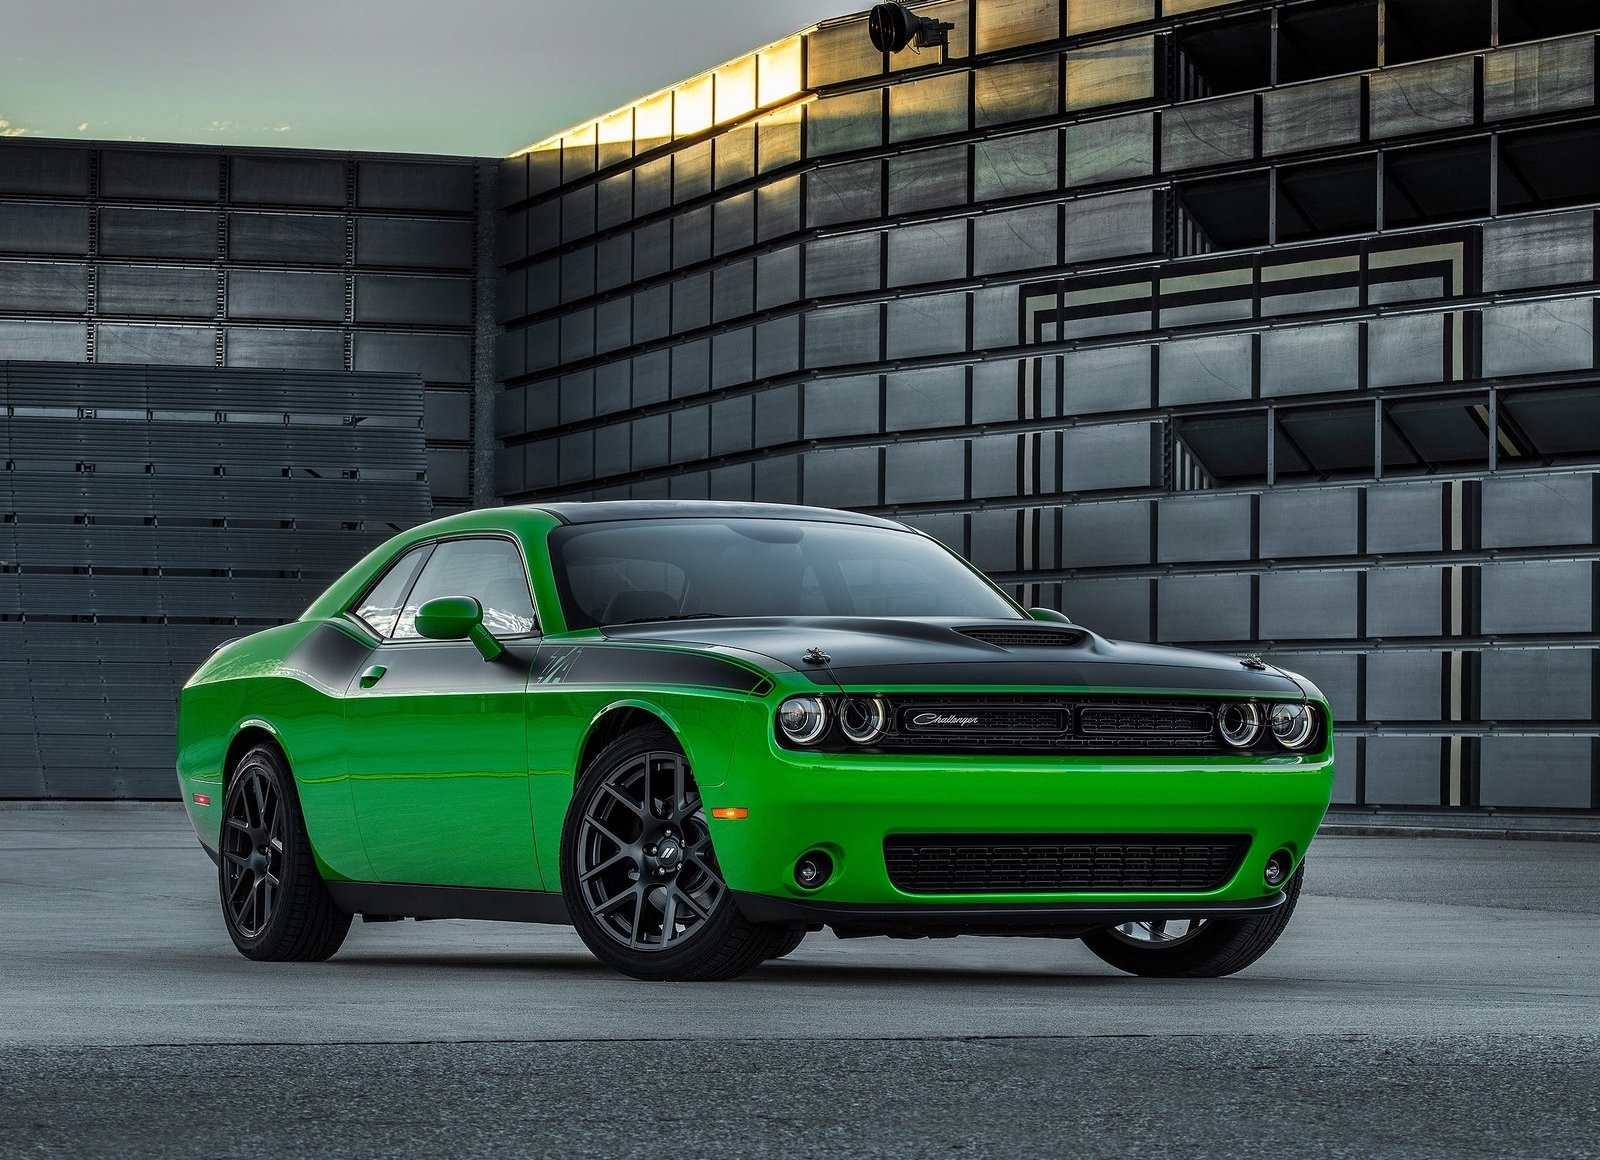 2017 Dodge Challenger T/A green